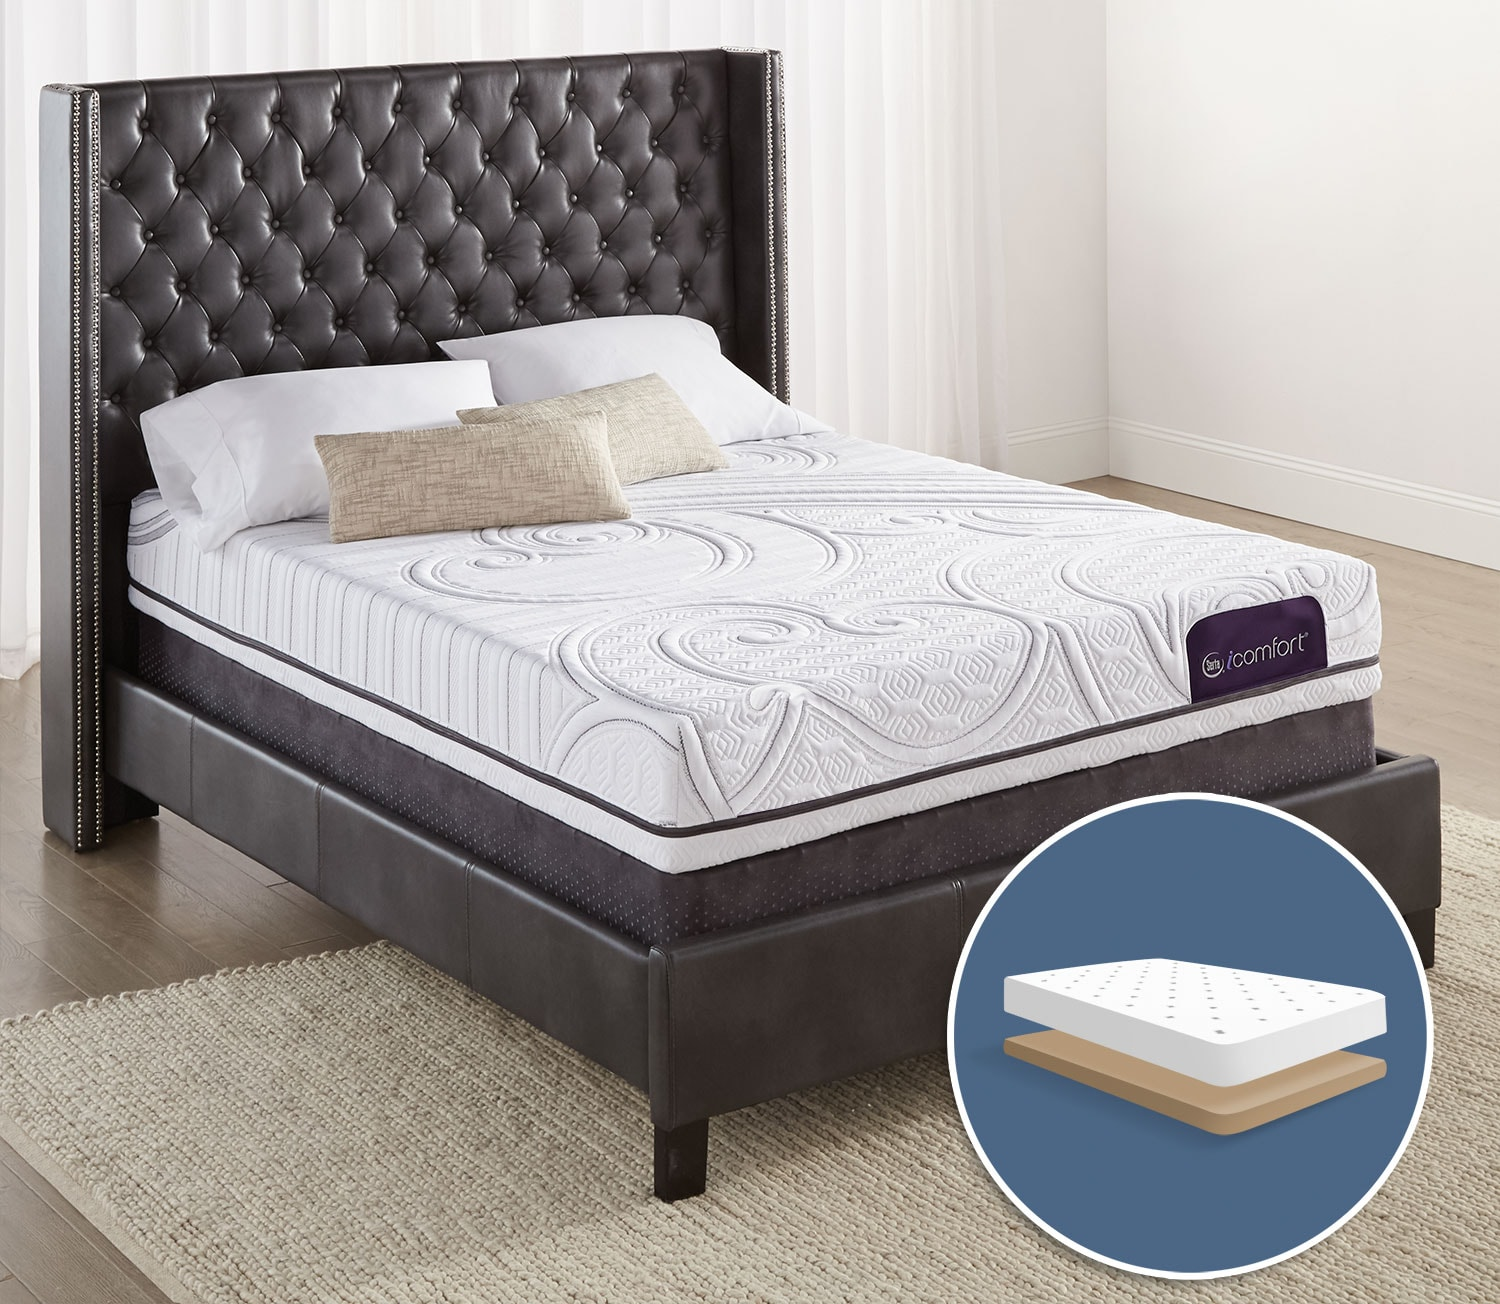 Serta iComfort Aura 2 Firm King Low-Profile Mattress Set